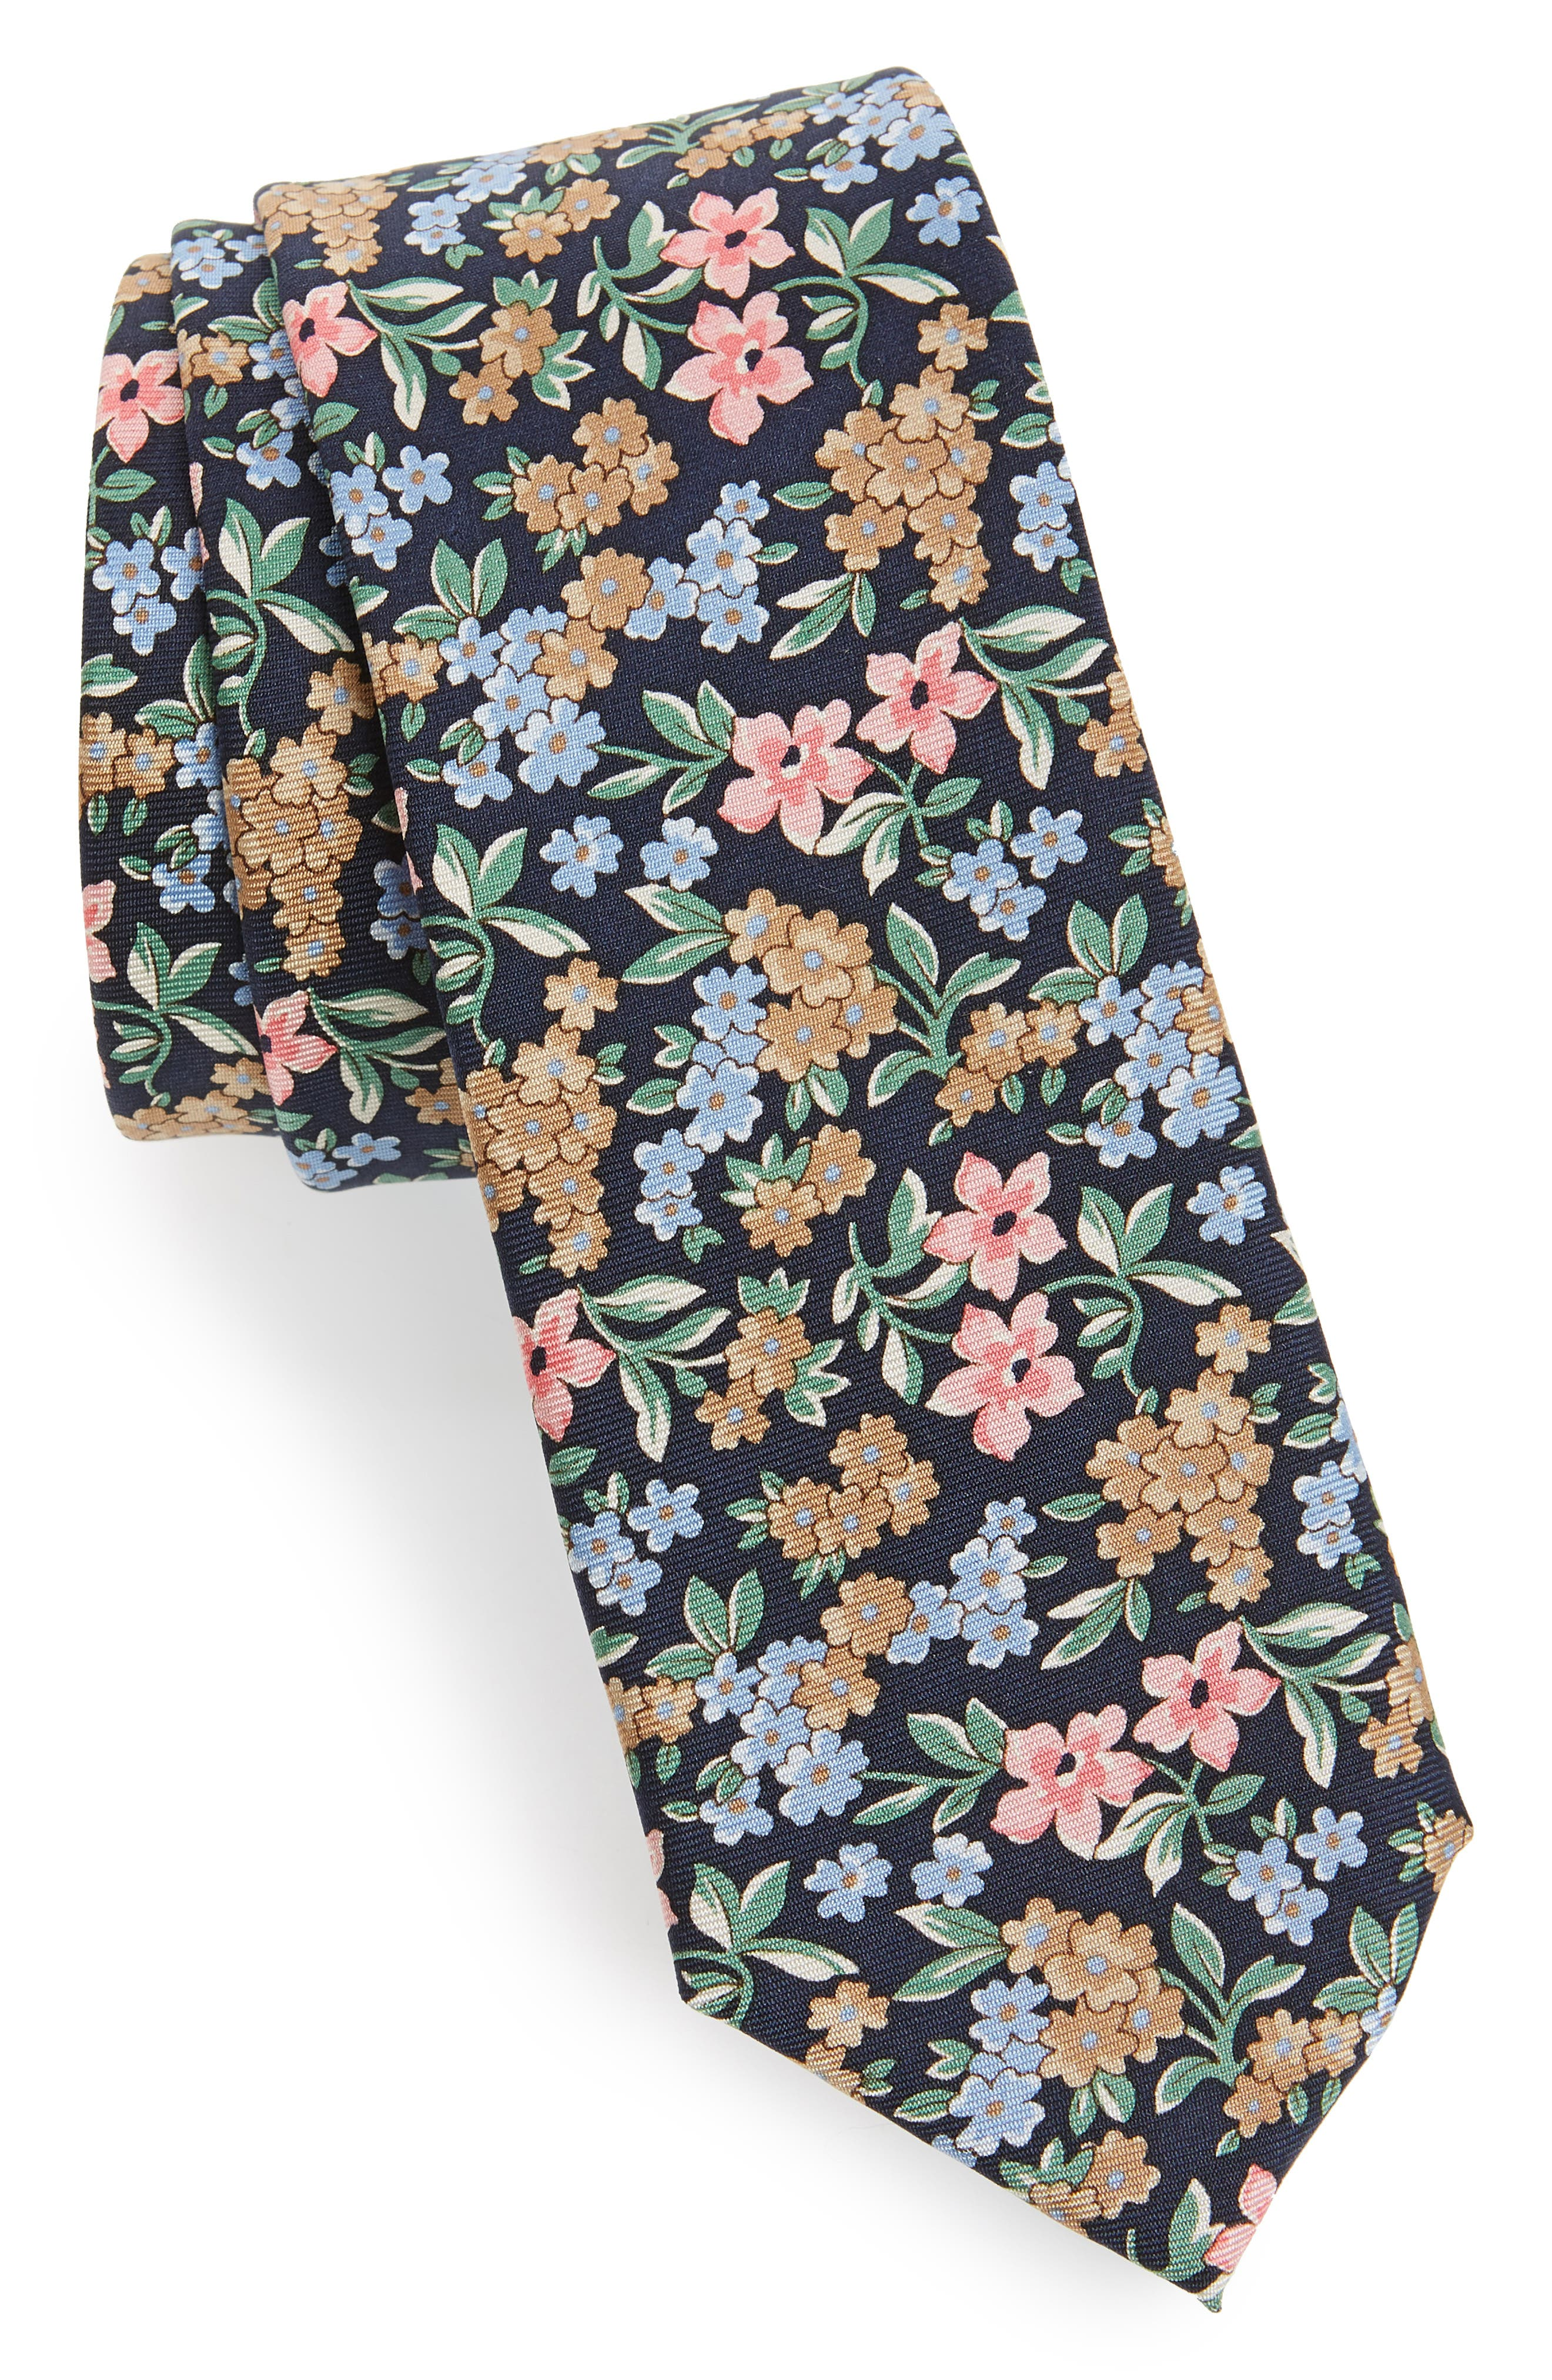 Cassidy Floral Silk Skinny Tie,                             Main thumbnail 1, color,                             Navy